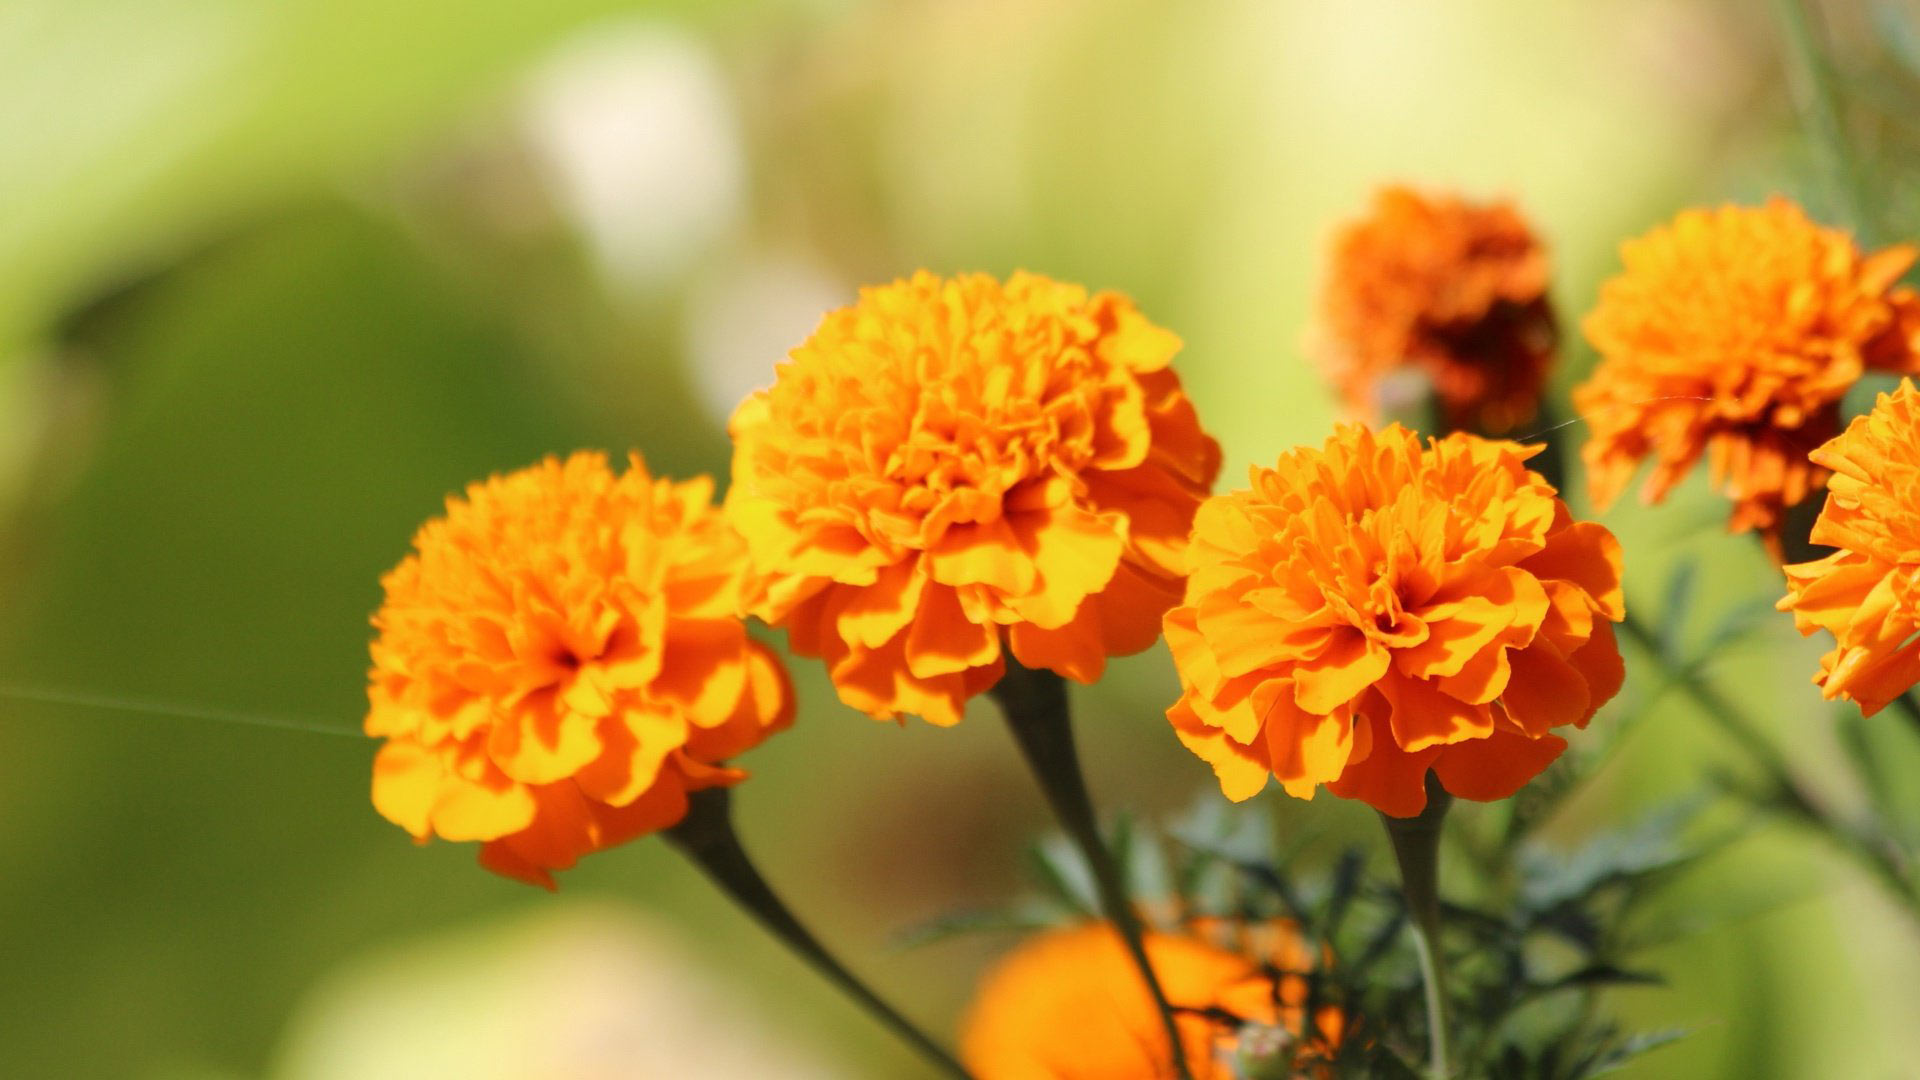 Spring Anime Wallpaper Marigold Wallpapers High Quality Download Free